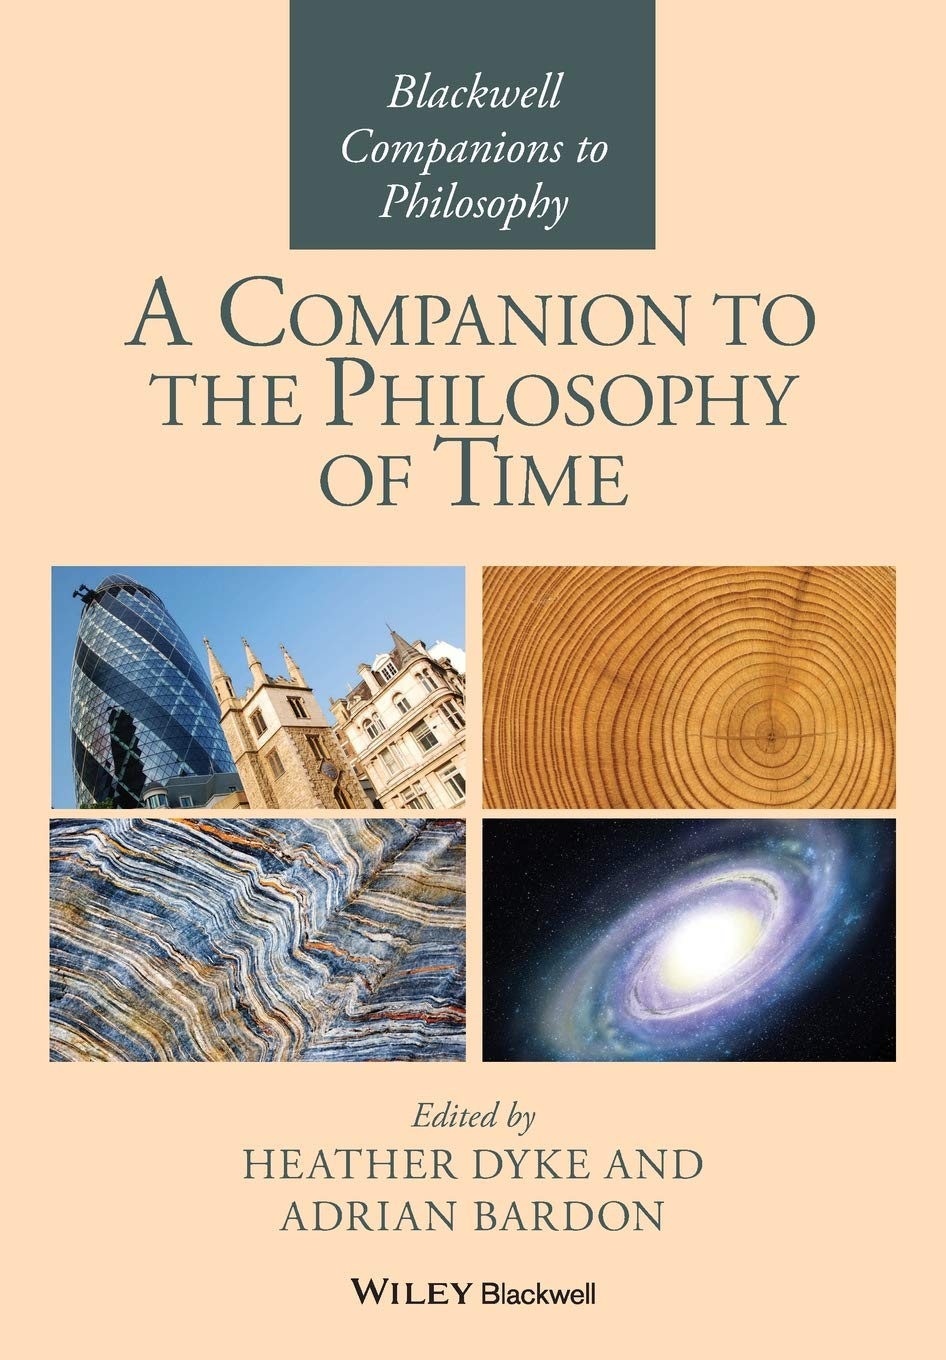 Image OfA Companion To The Philosophy Of Time (Blackwell Companions To Philosophy)